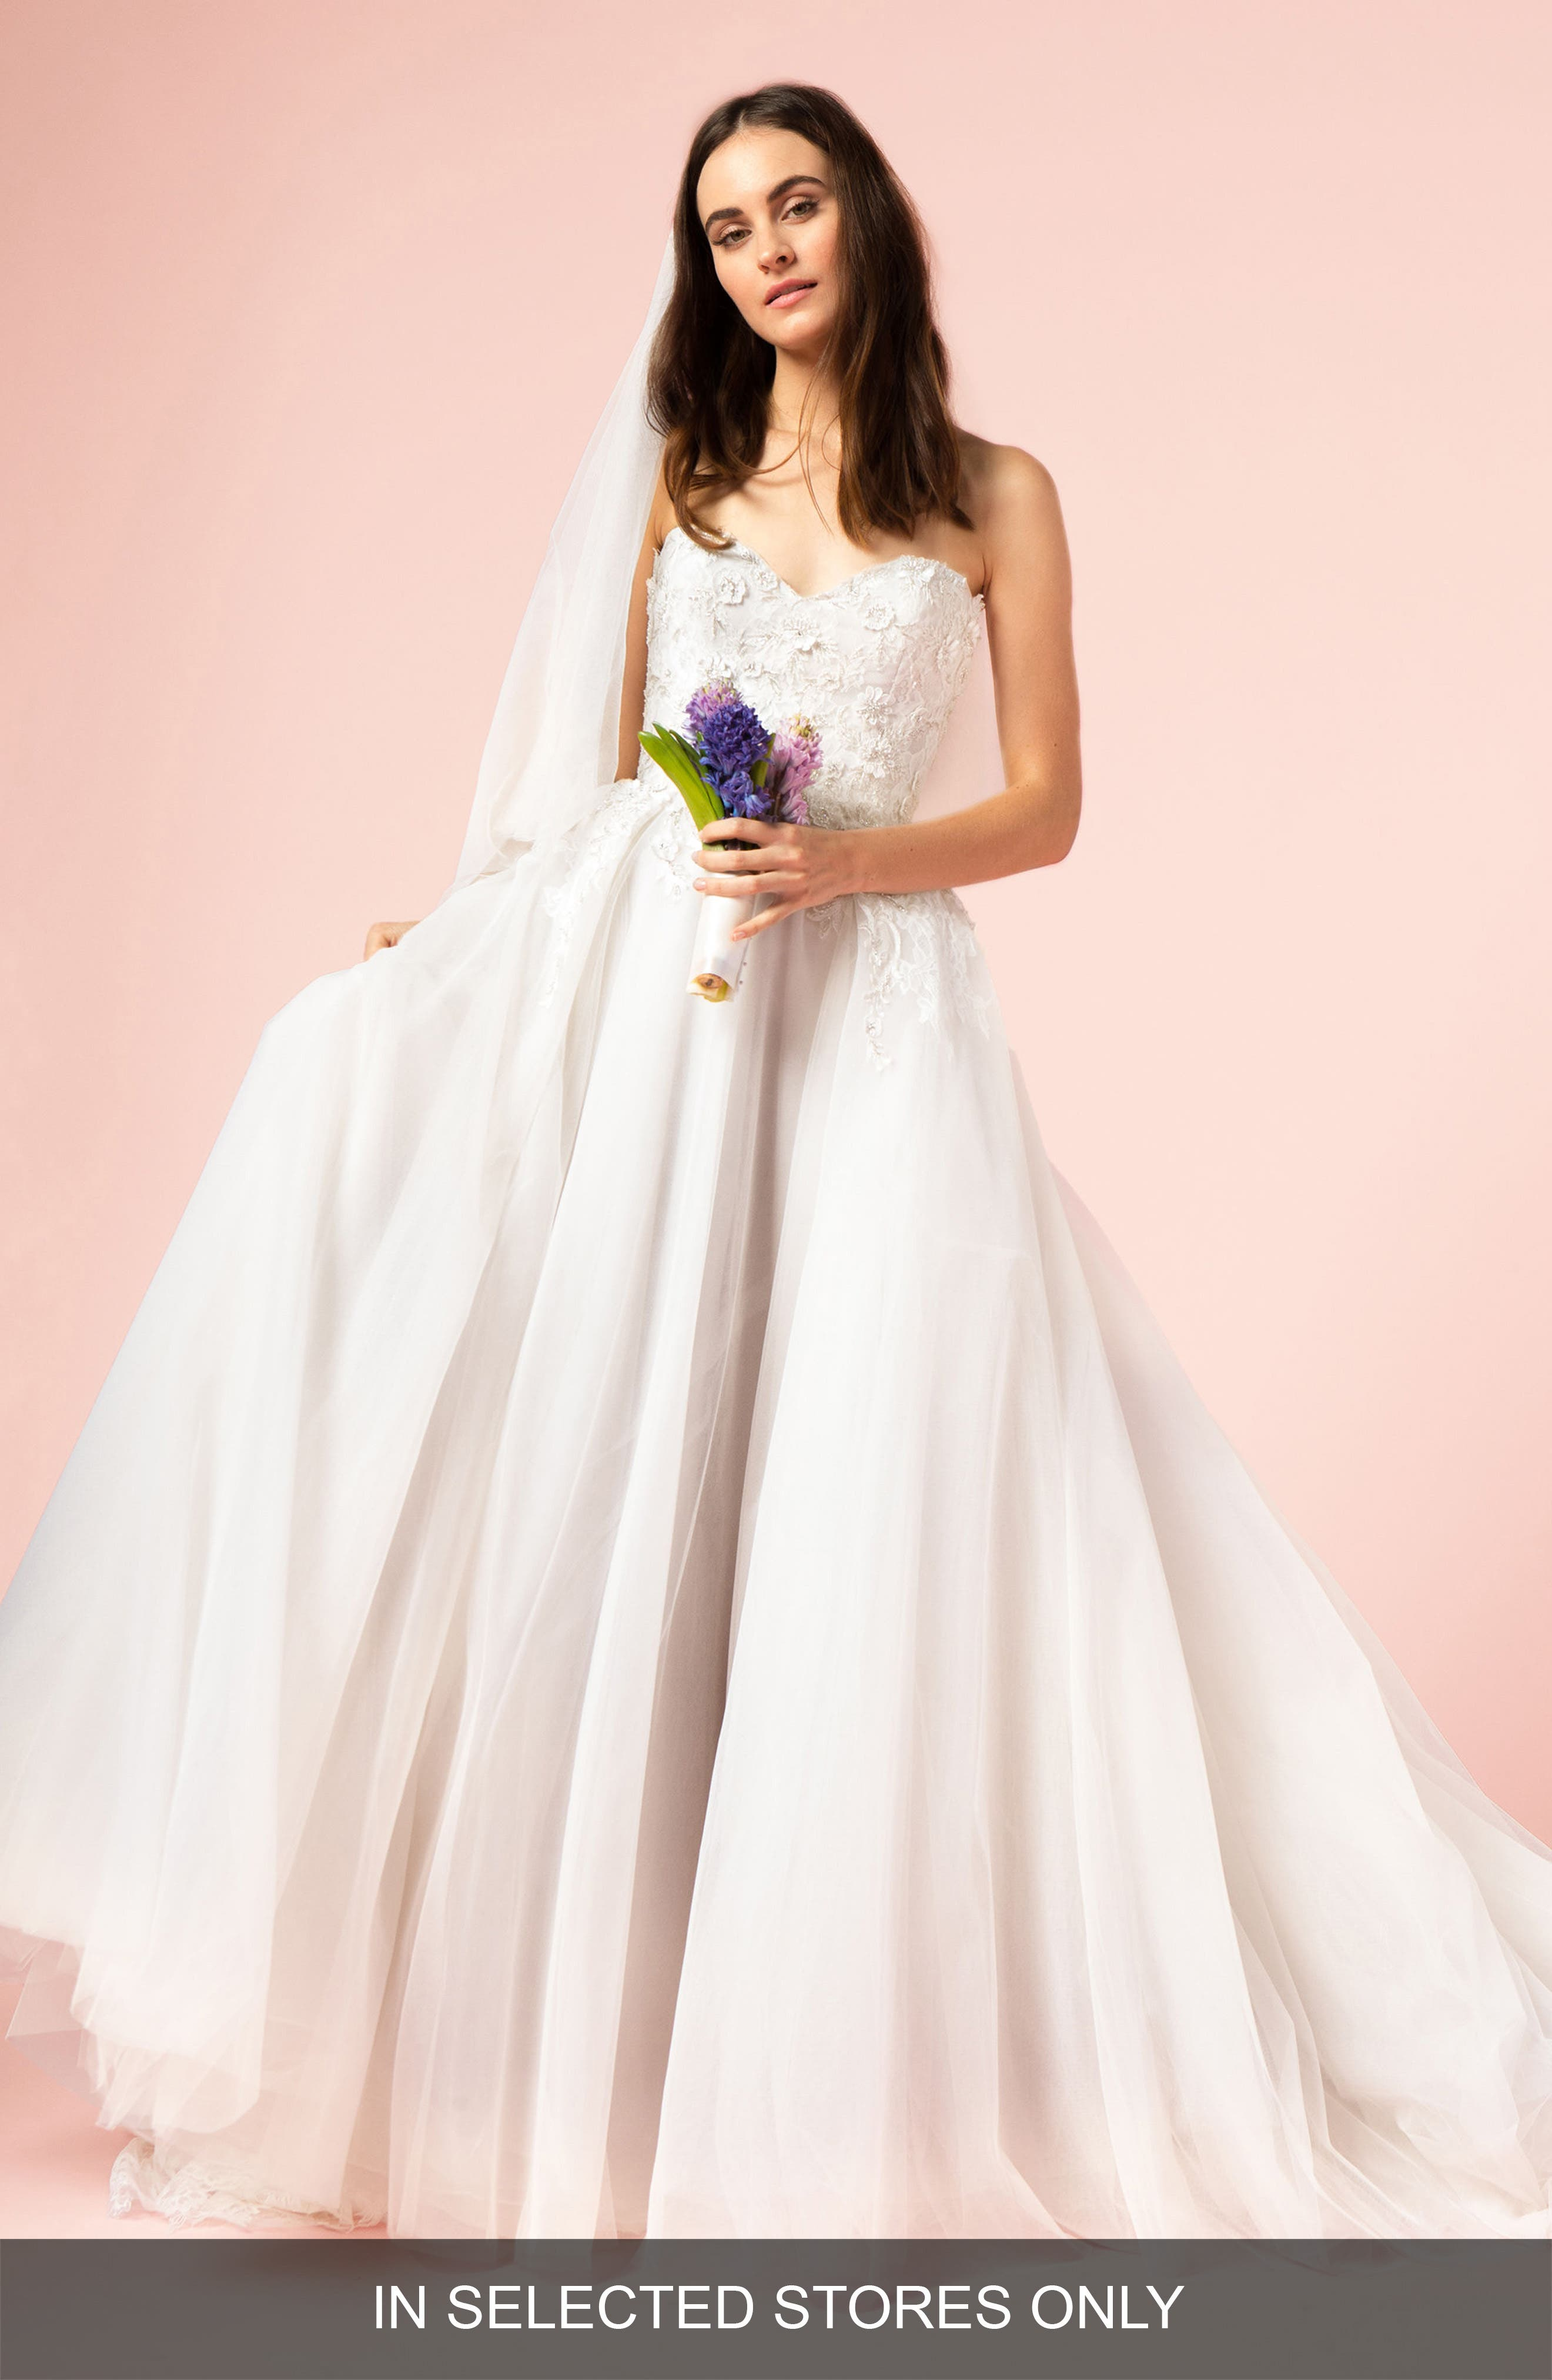 Main Image - BLISS Monique Lhuillier Strapless Sweetheart Gown